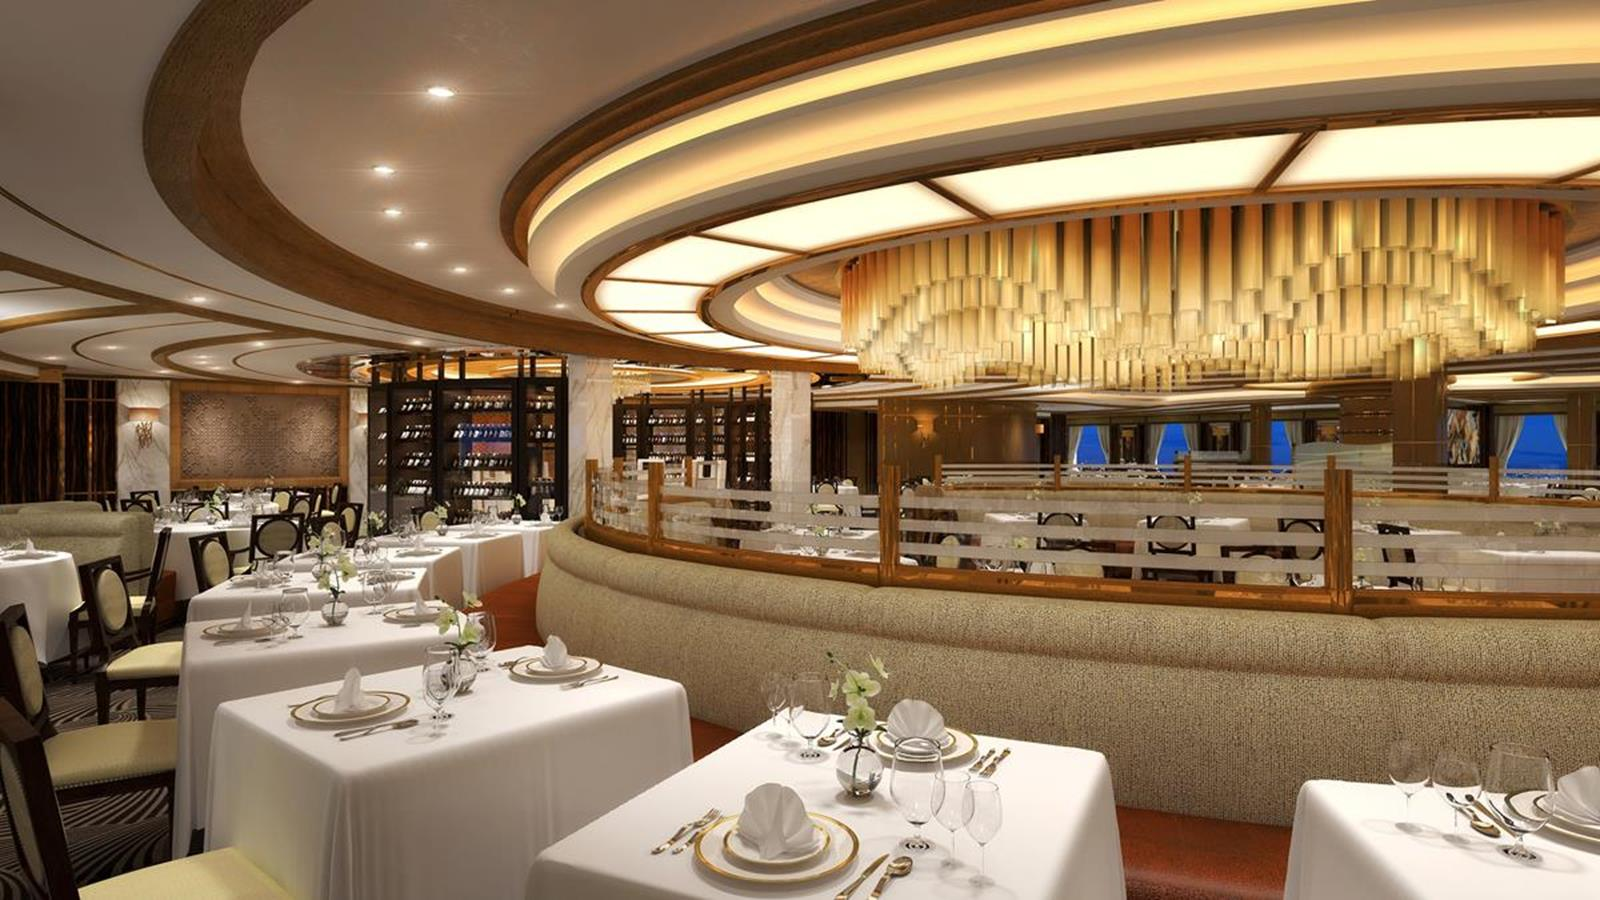 Sky Princess Main Dining Room By Cindy Bertram cindy@ptmgroups.com